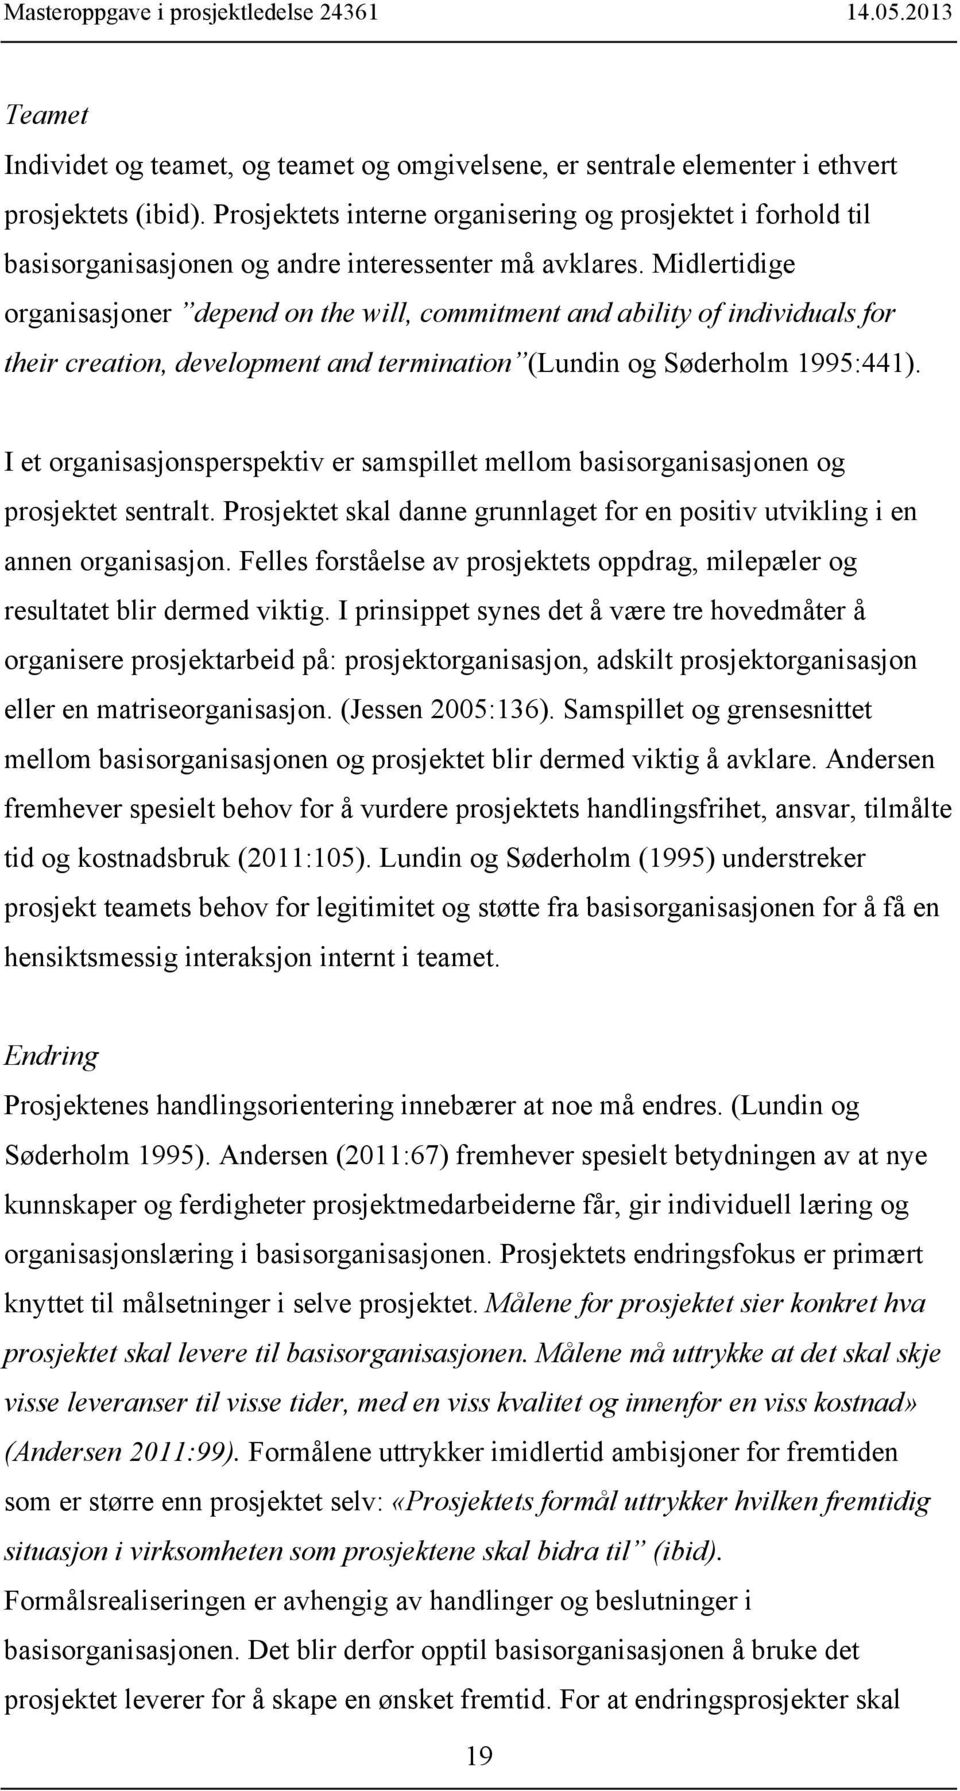 Midlertidige organisasjoner depend on the will, commitment and ability of individuals for their creation, development and termination (Lundin og Søderholm 1995:441).